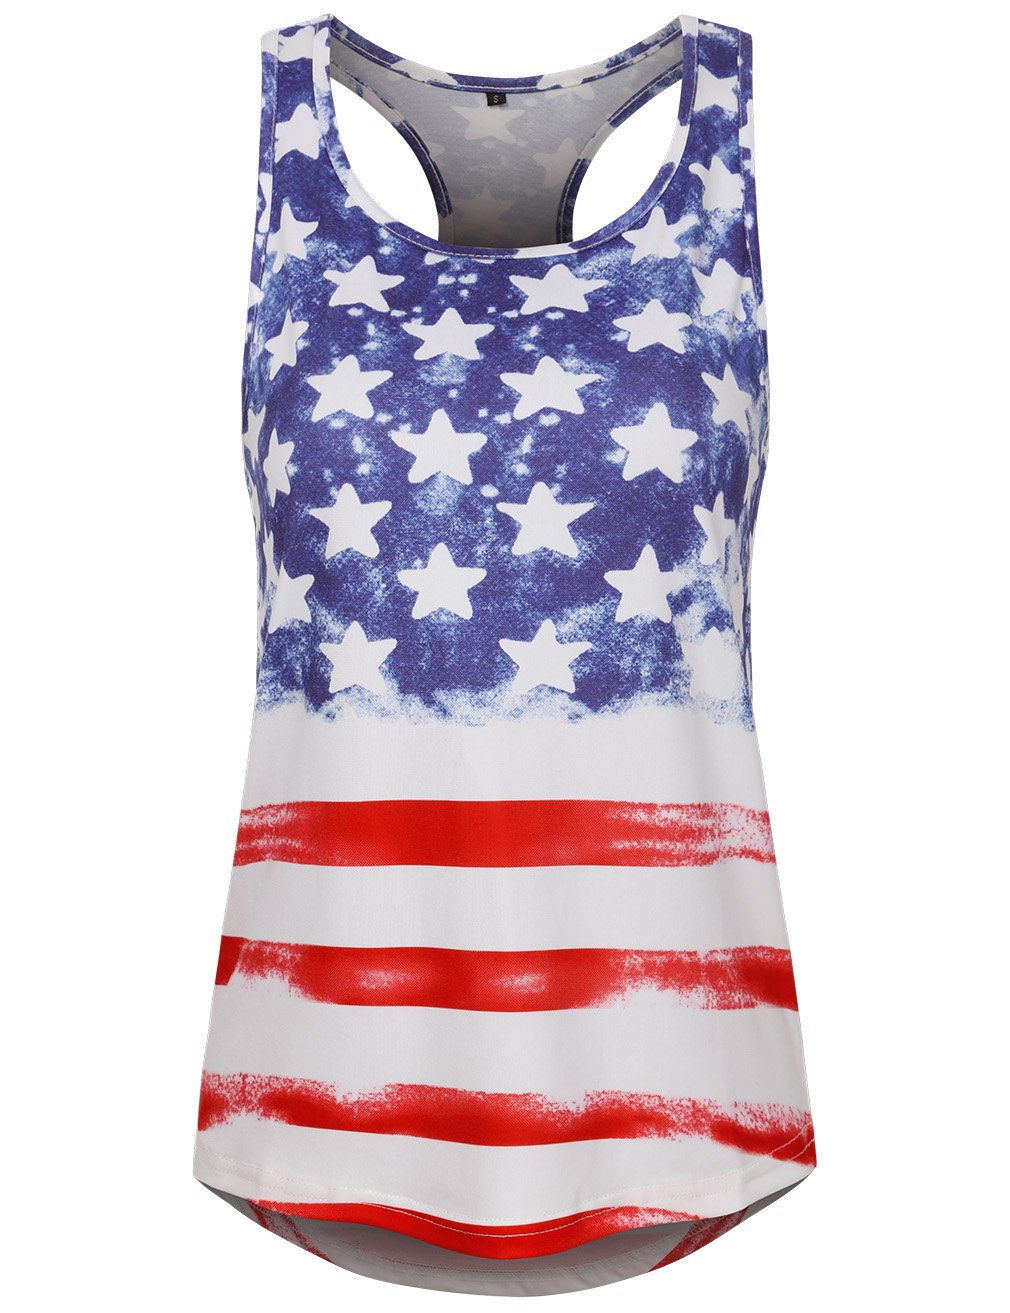 SUNGLORY Flag Tank Tops for Women,Summer Loose Printed Tunic Shirts